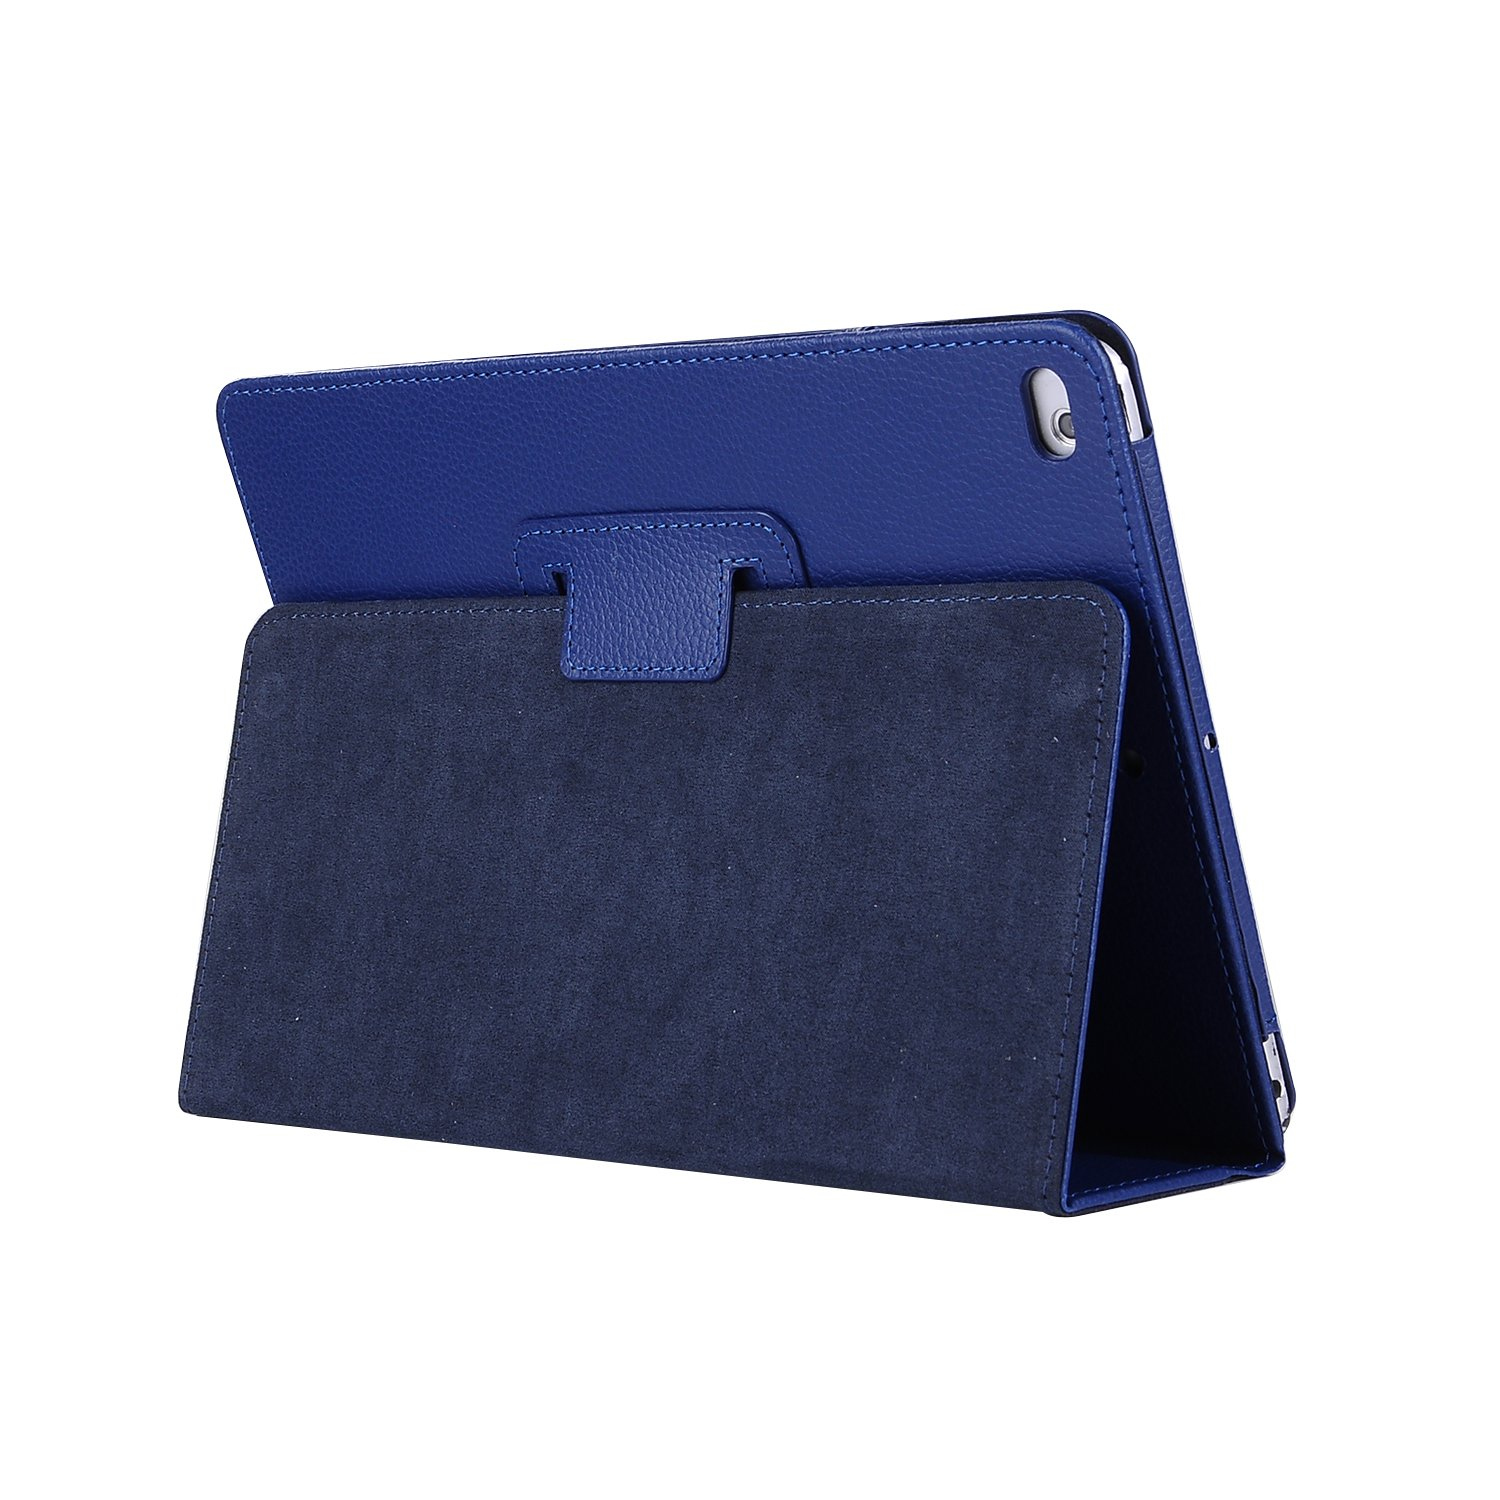 iPad Capa Funda Apple 7th Foilo-Stand A2200 A2232 Cover Case for A2197 Tablet